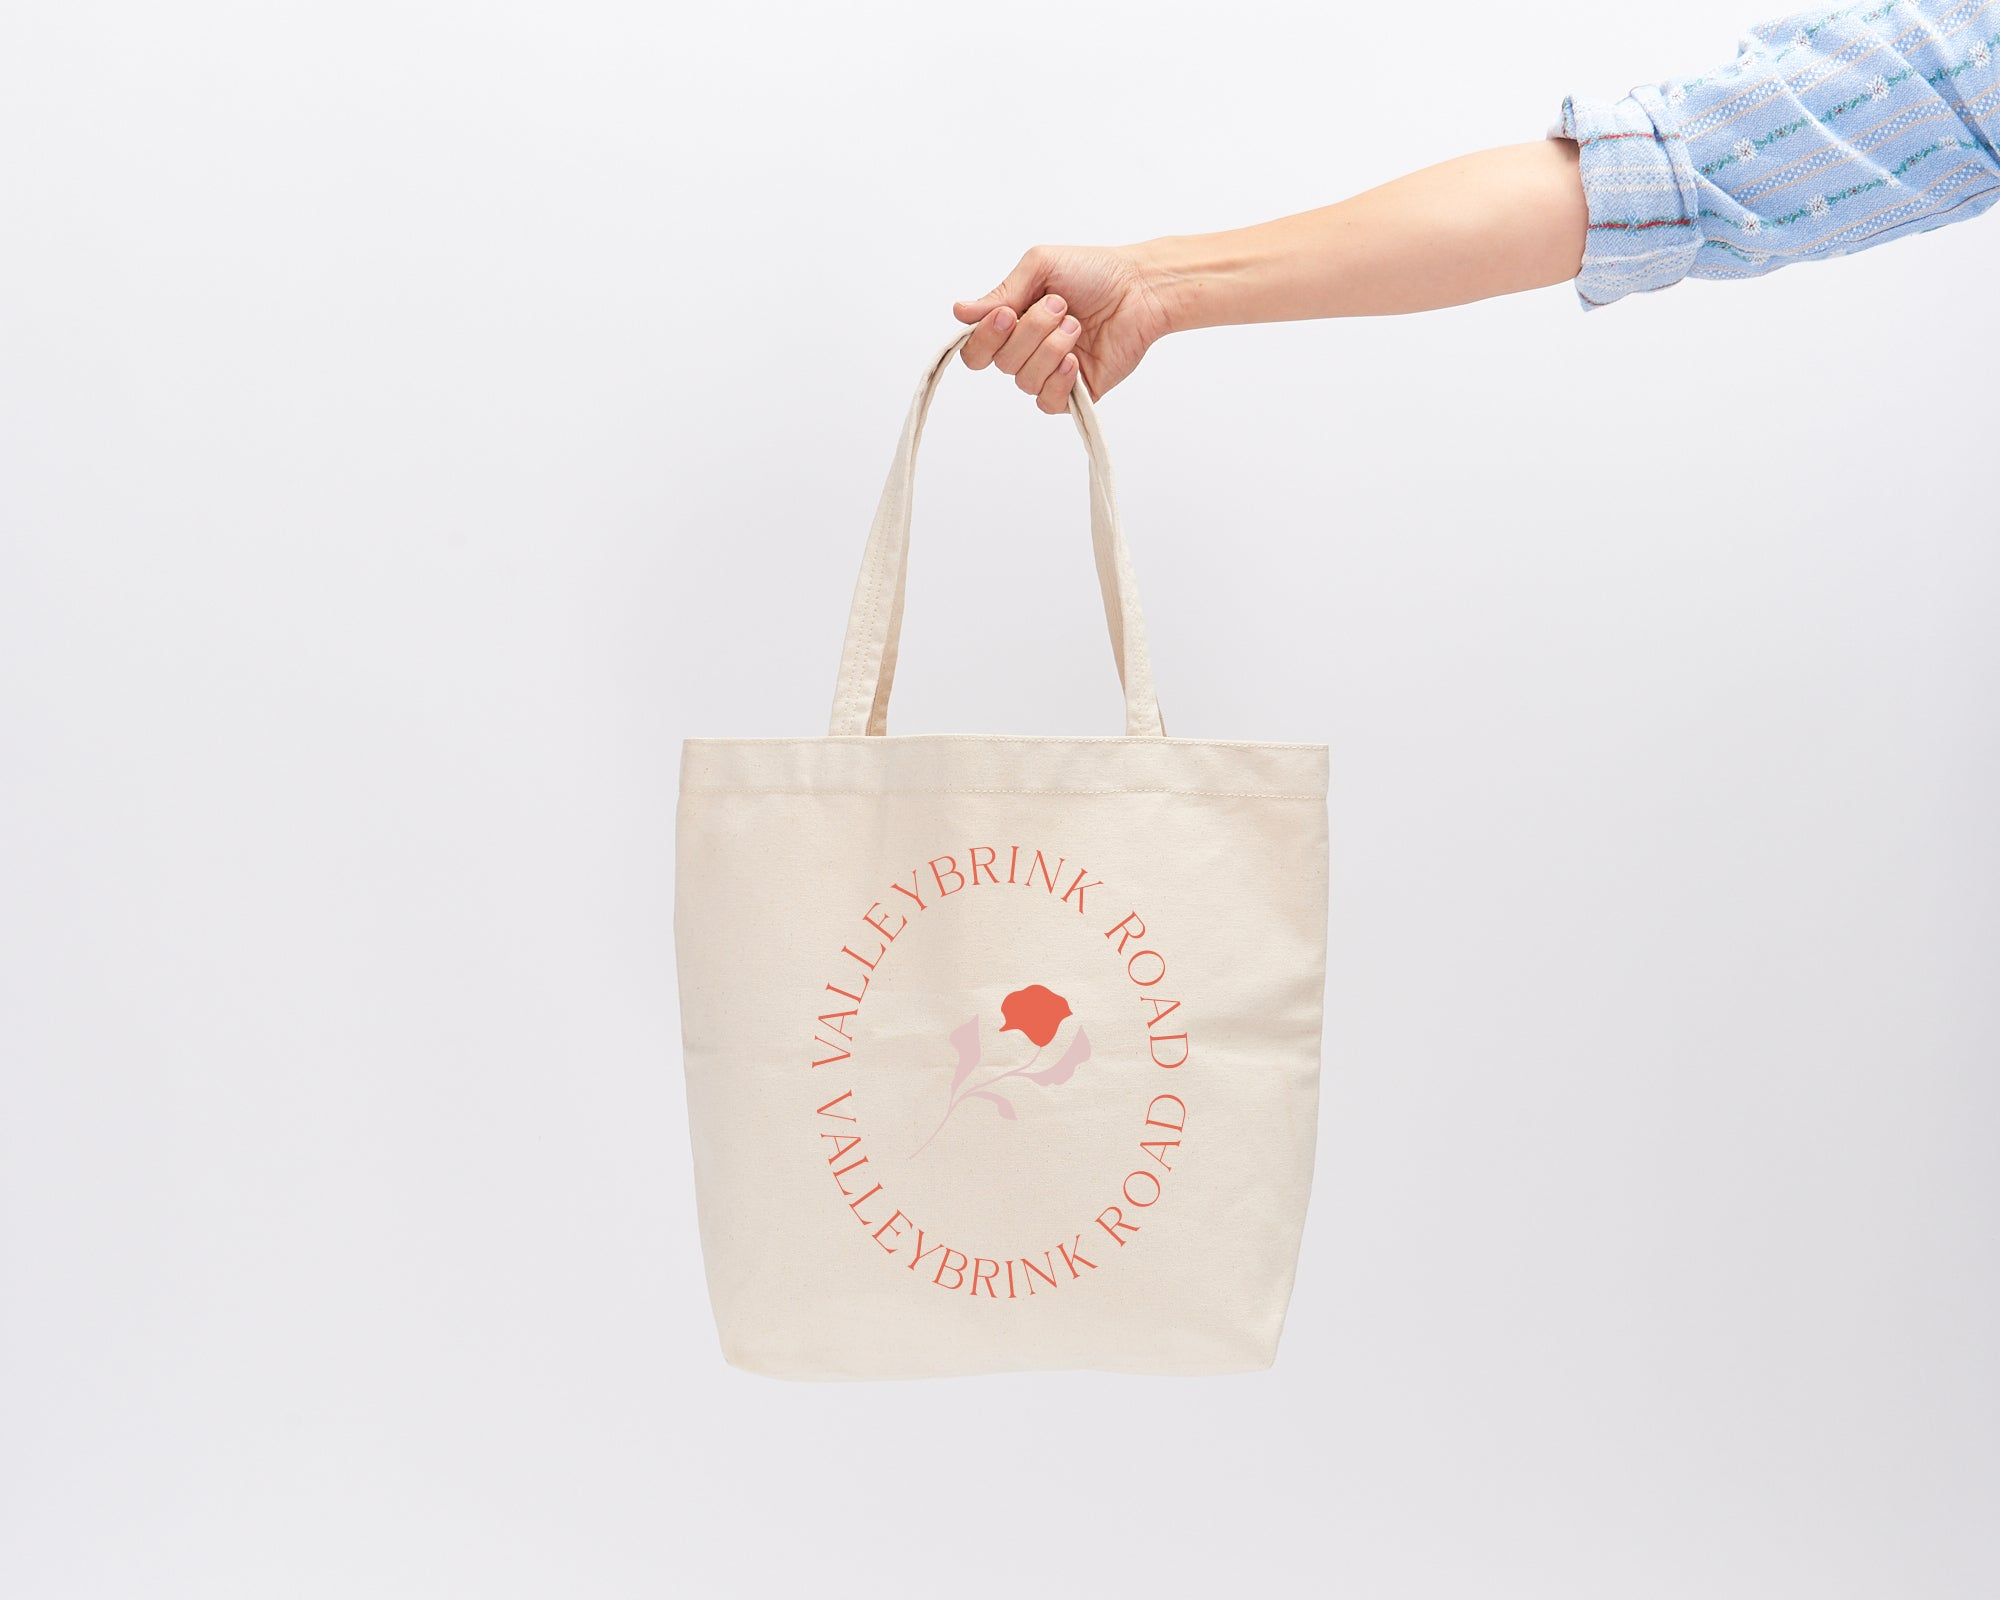 Valleybrink Road Canvas Tote